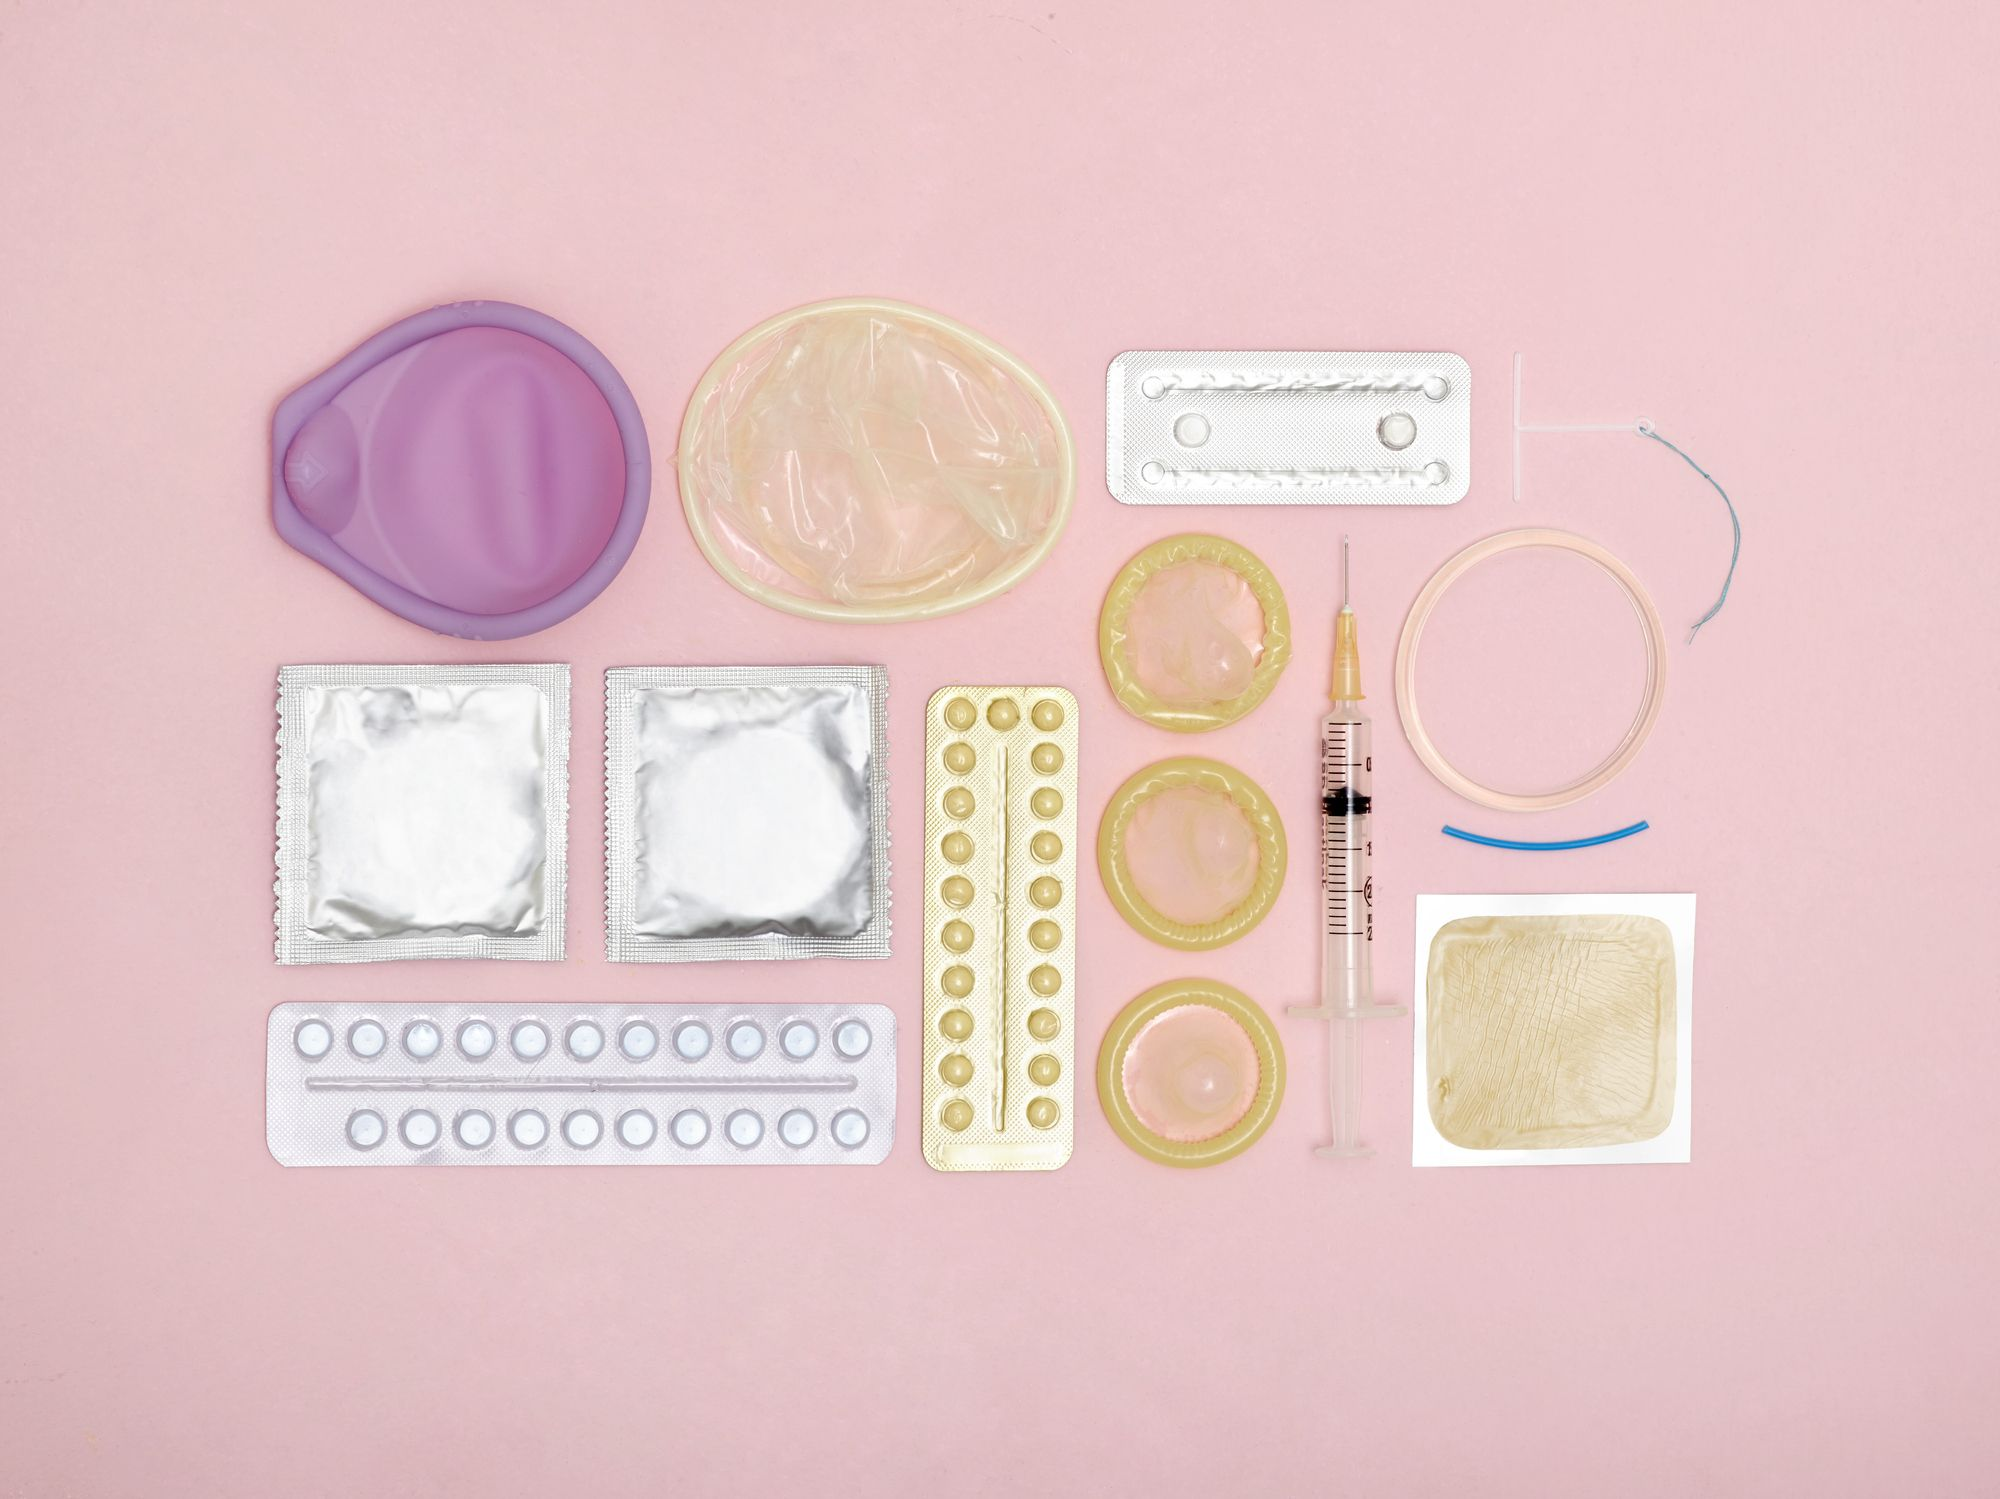 Will you gain weight on contraception?